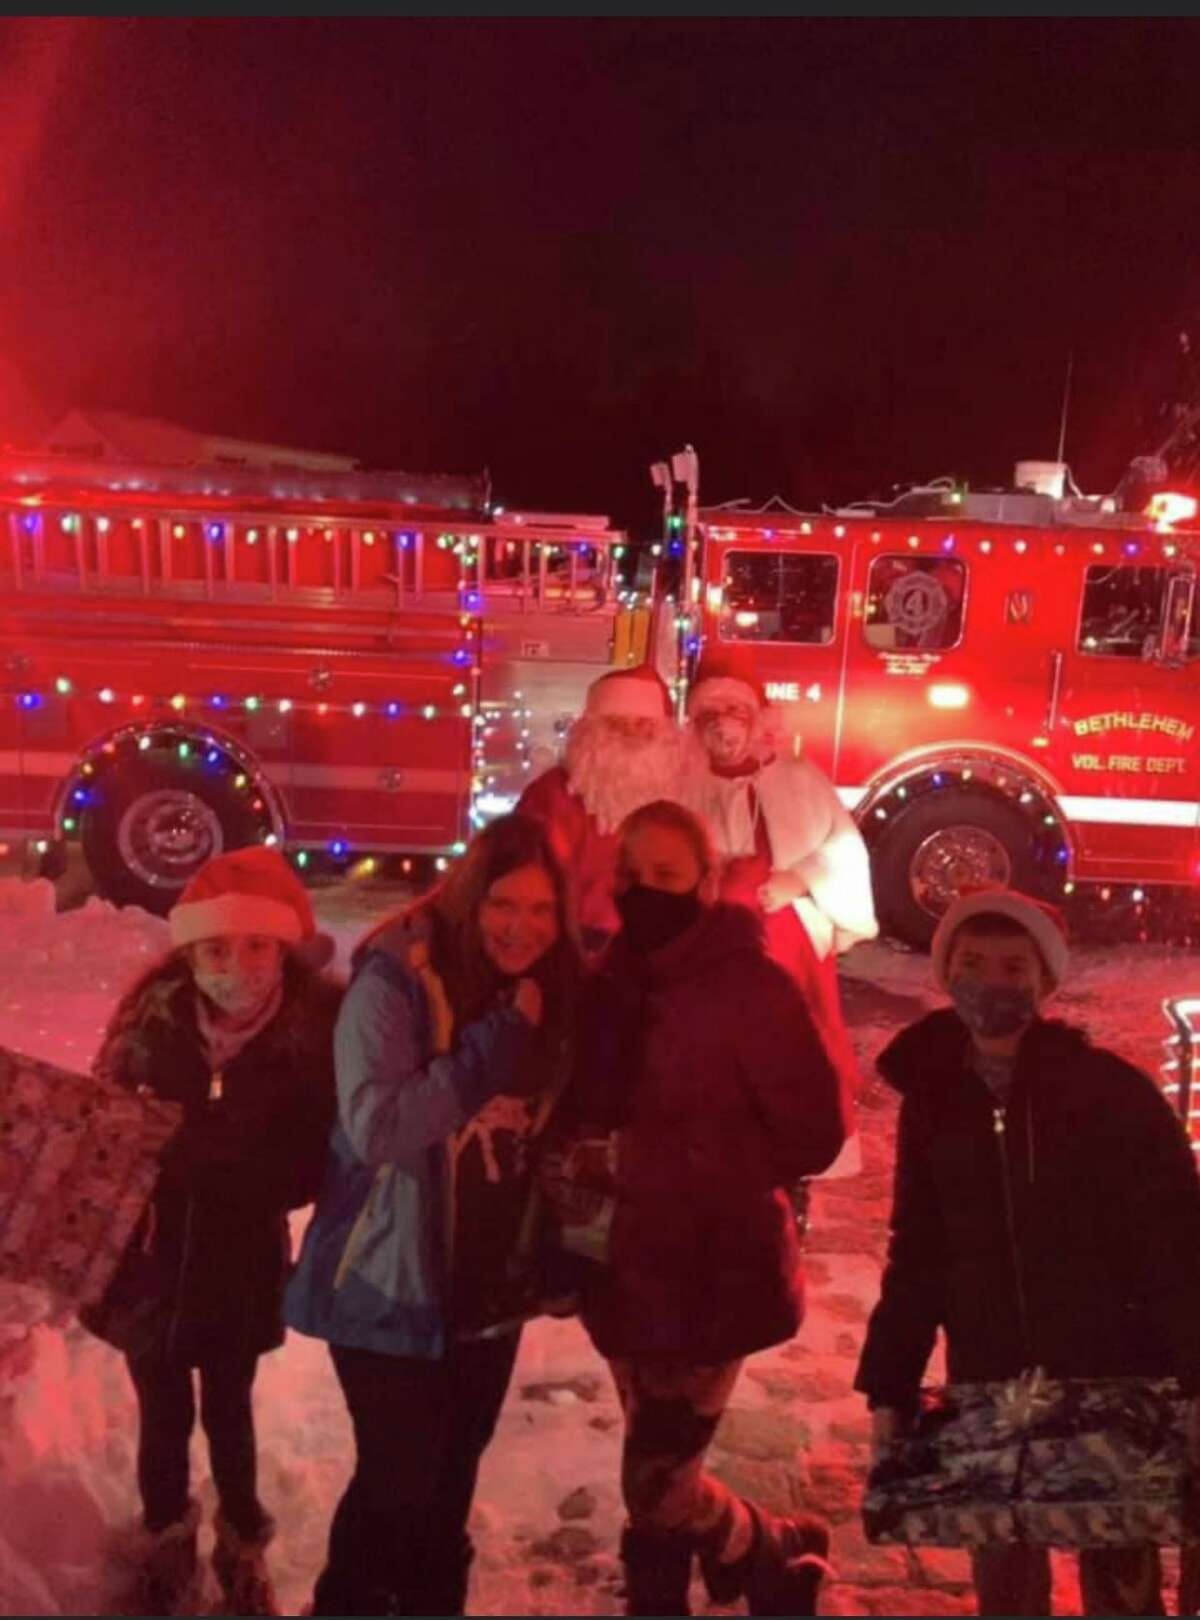 Children from Bethlehem receive Christmas presents from Santa Claus on Saturday night, on his annual Santa Run tradition.